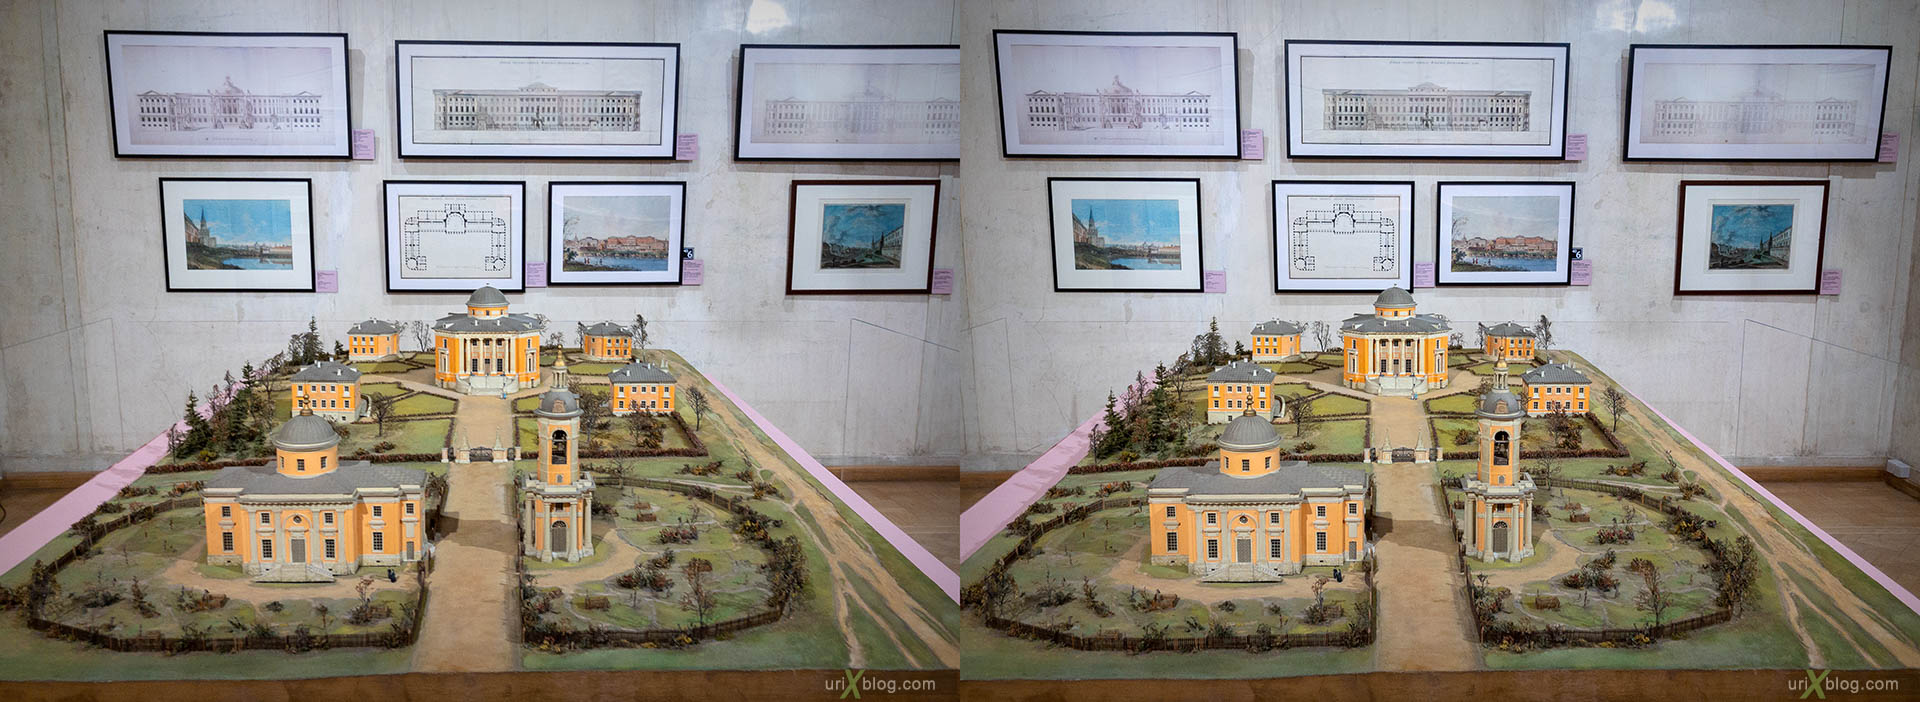 Petrovskoe-Knyazhischevo estate, museum, architecture museum, Moscow, Russia, 3D, stereo pair, cross-eyed, crossview, cross view stereo pair, stereoscopic, 2018